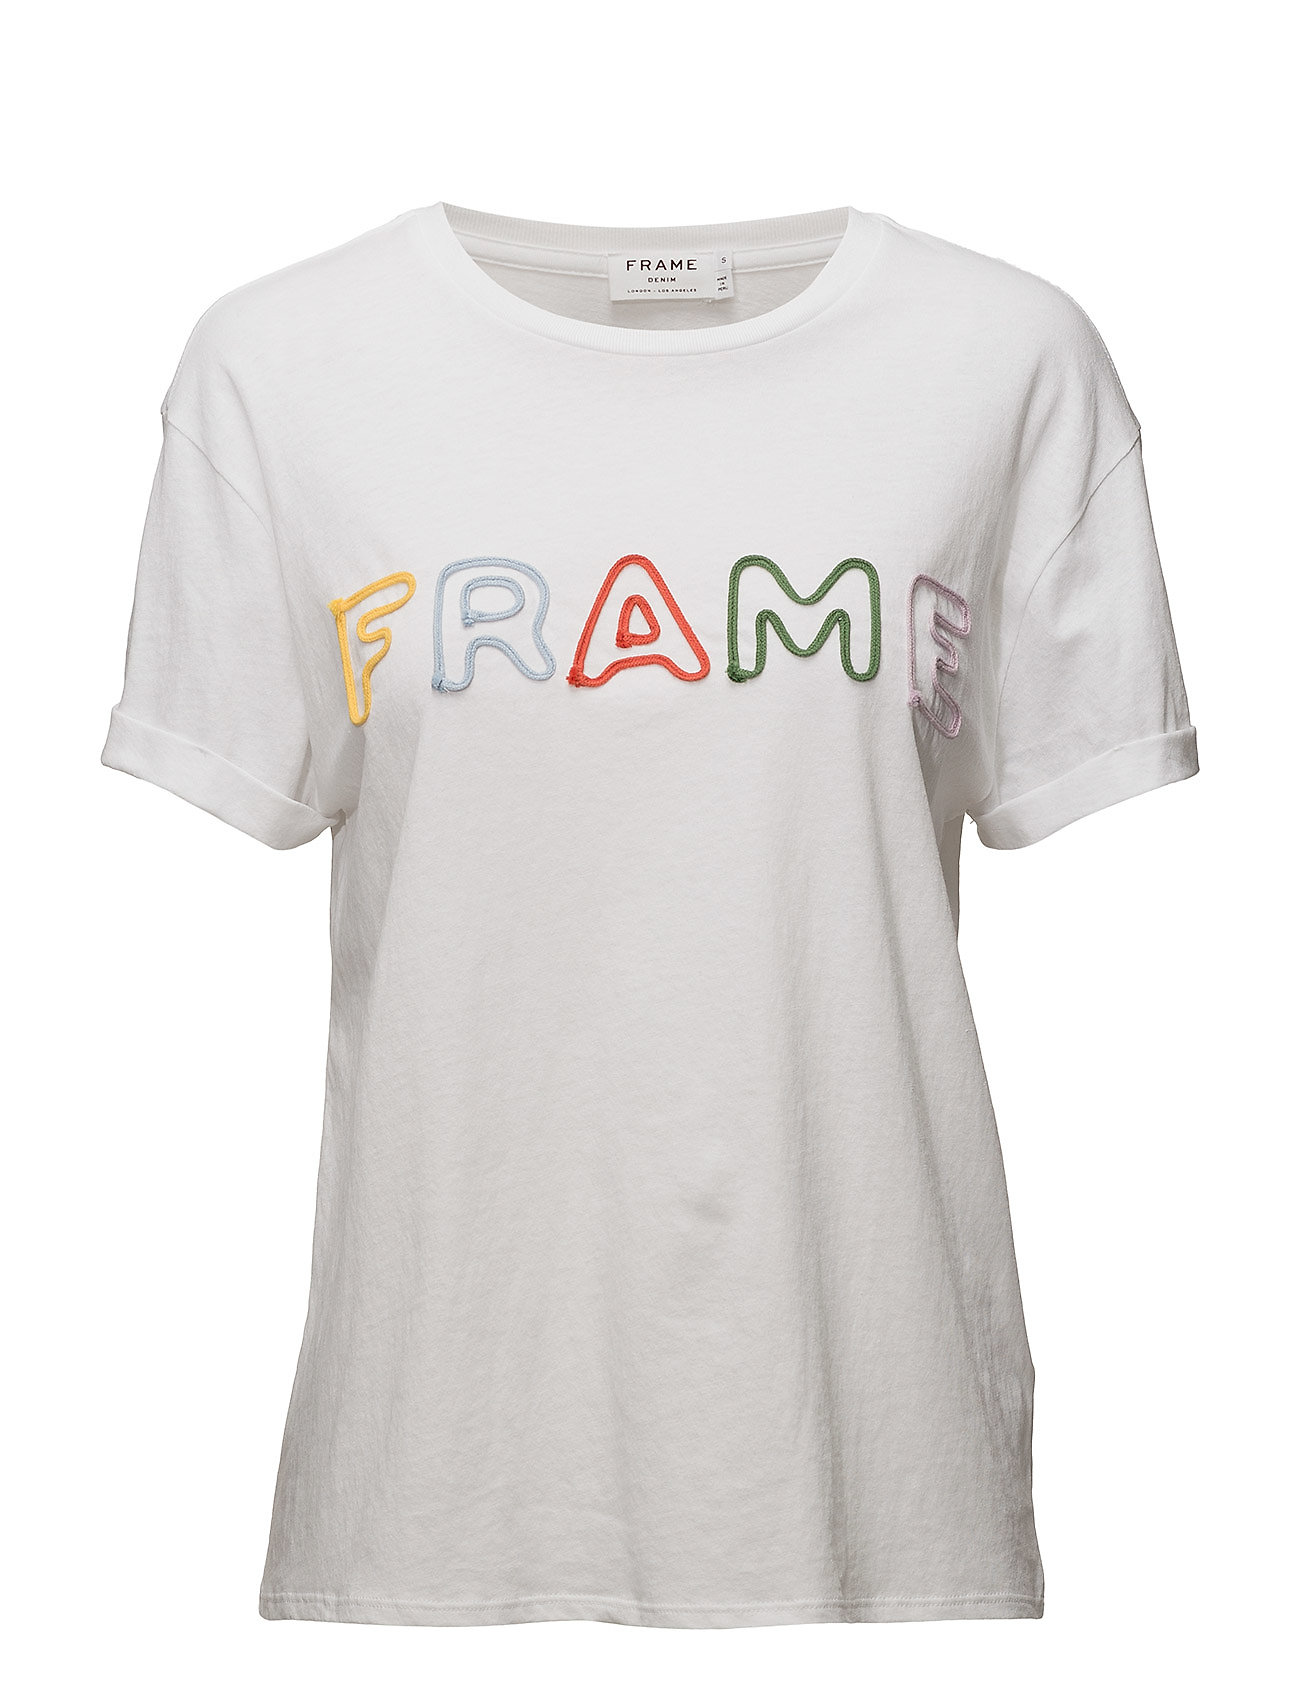 Rolled Frame Tee (Blanc) (£67.50) - FRAME - T-shirts & Tops | Boozt.com